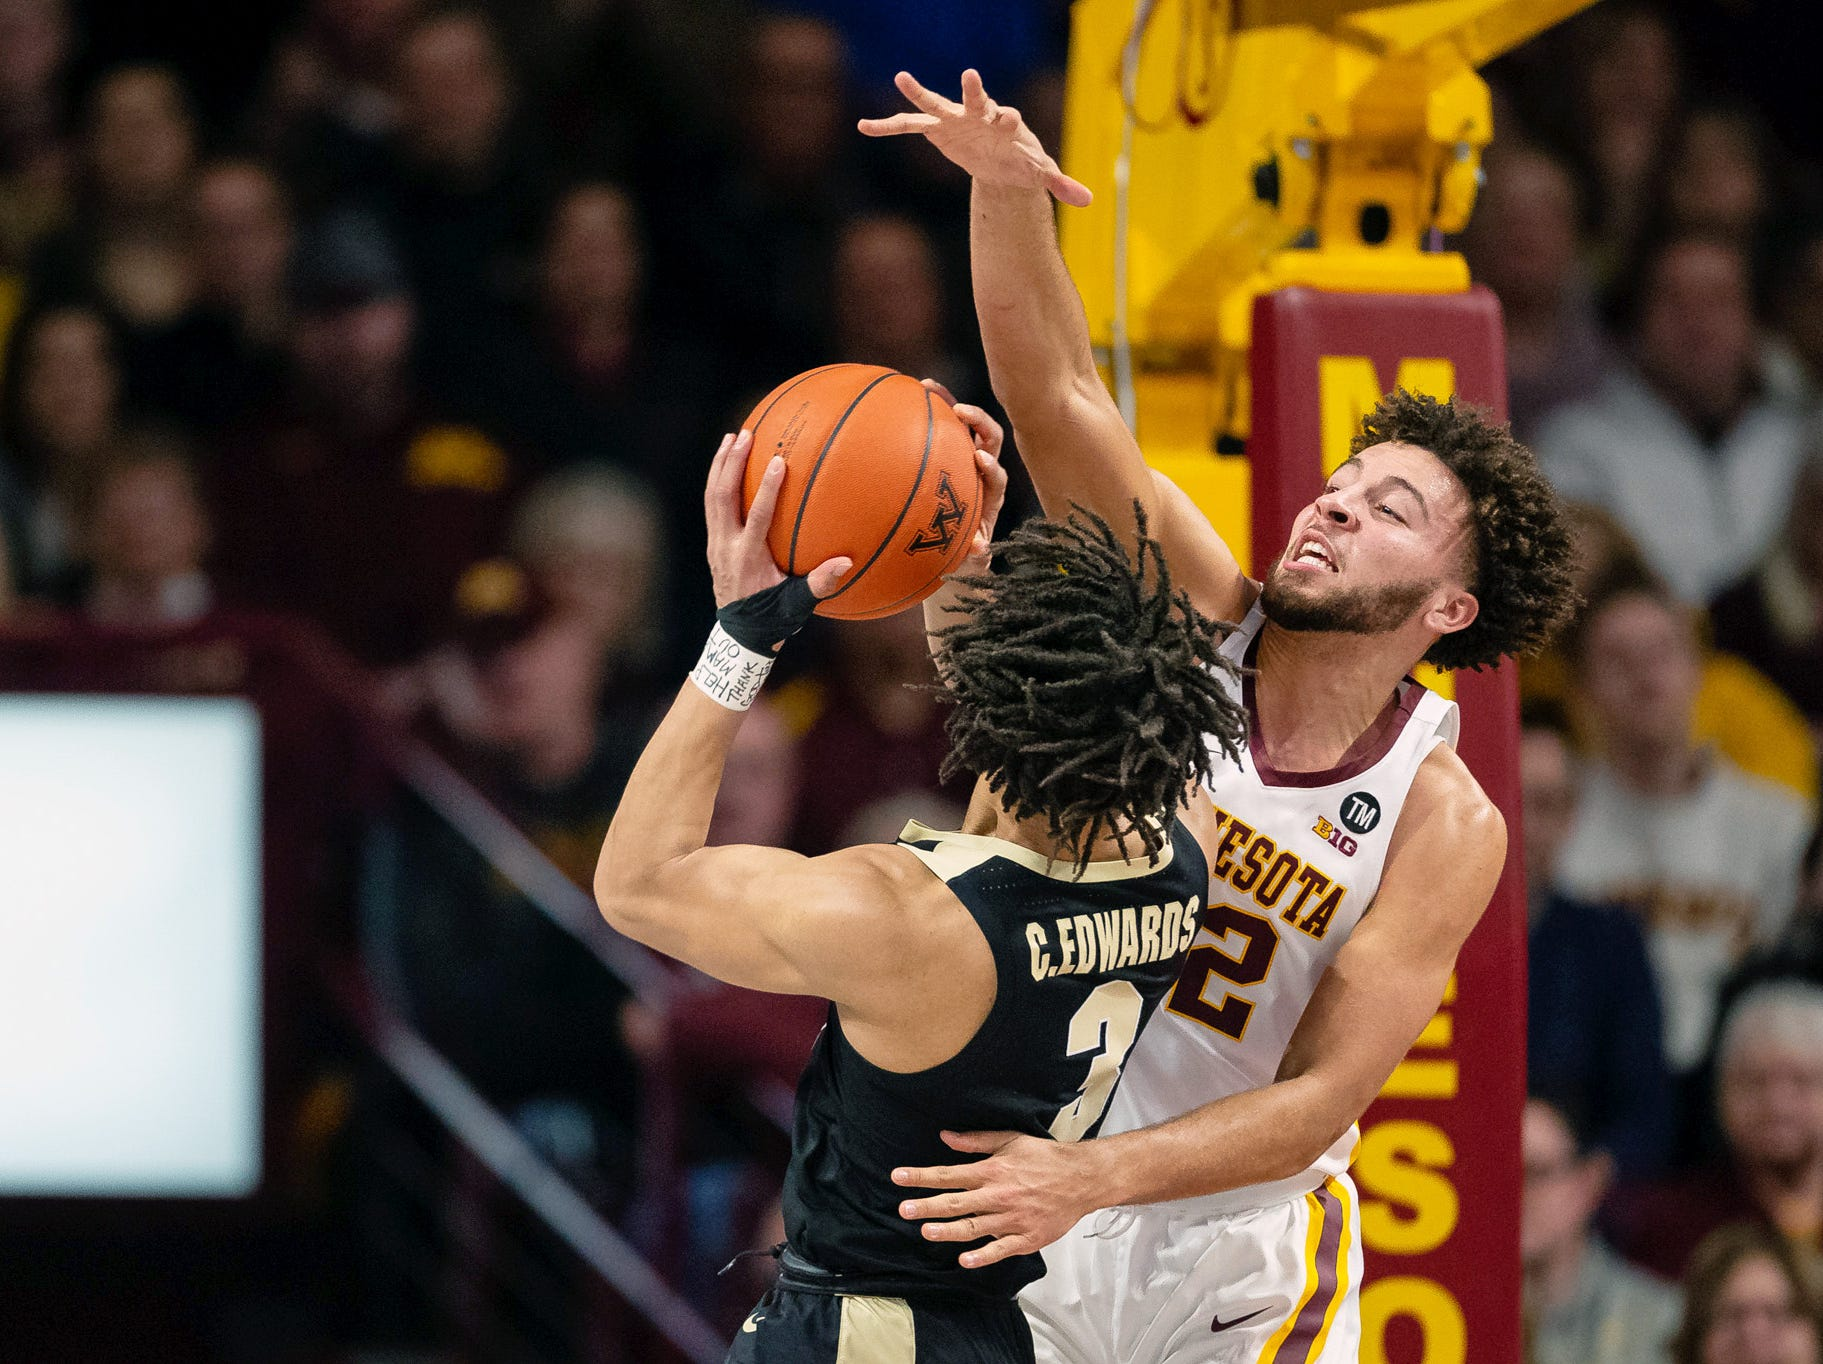 Mar 5, 2019; Minneapolis, MN, USA; Minnesota Gophers guard Gabe Kalscheur (22) blocks Purdue Boilermakers guard Carsen Edwards (3) shot during the first half at Williams Arena. Mandatory Credit: Harrison Barden-USA TODAY Sports